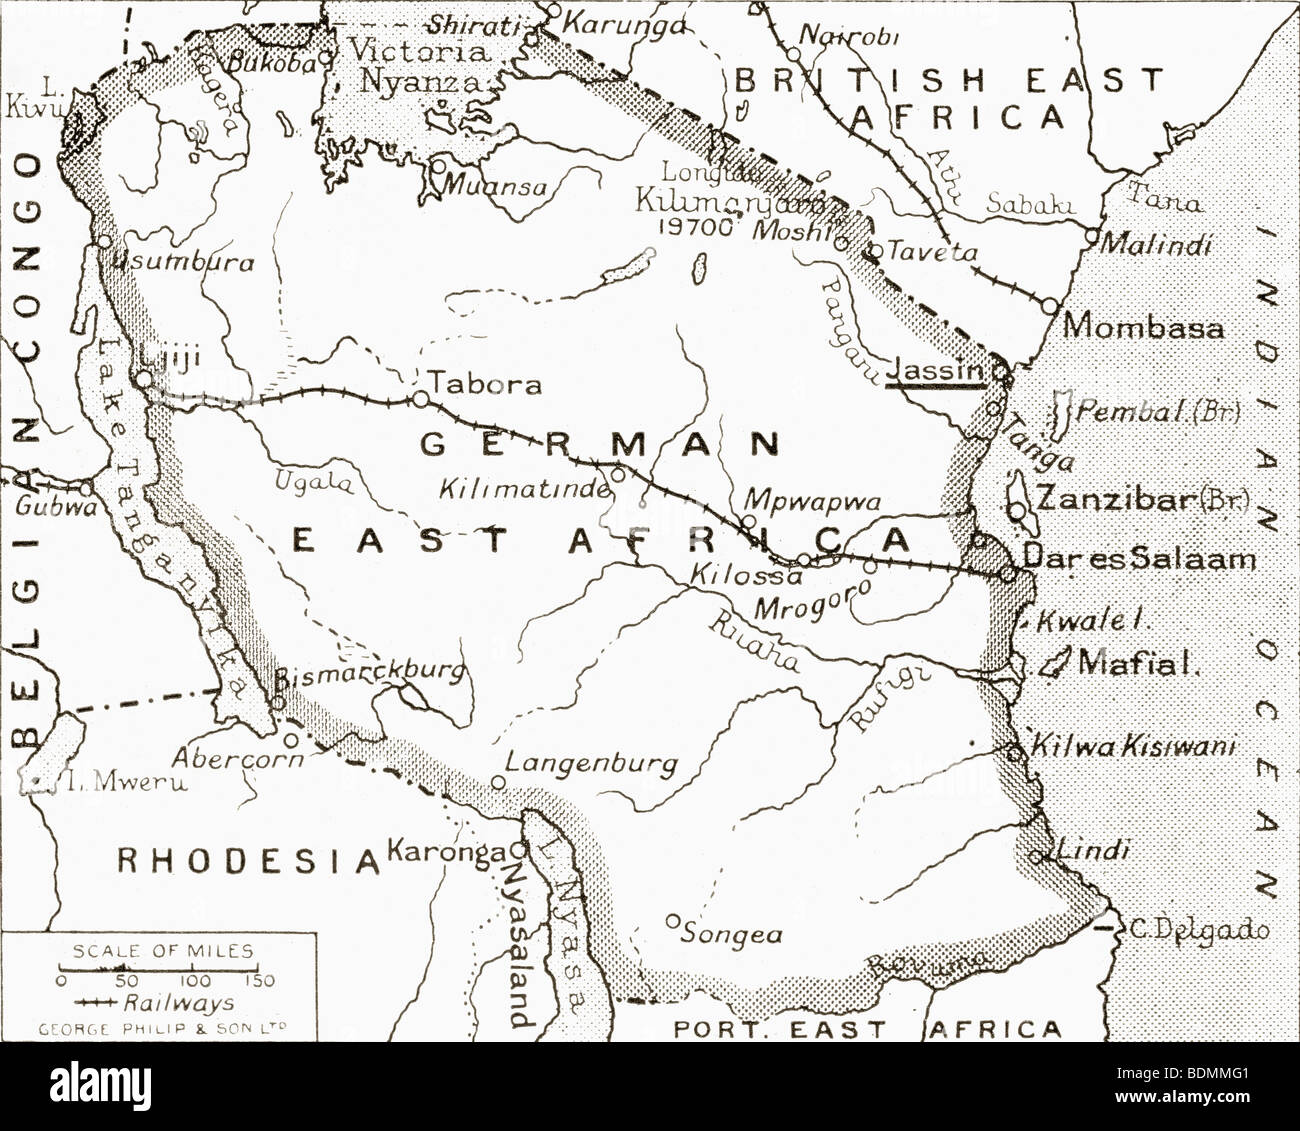 map of german east africa showing jassin scene of one of britains campaigns